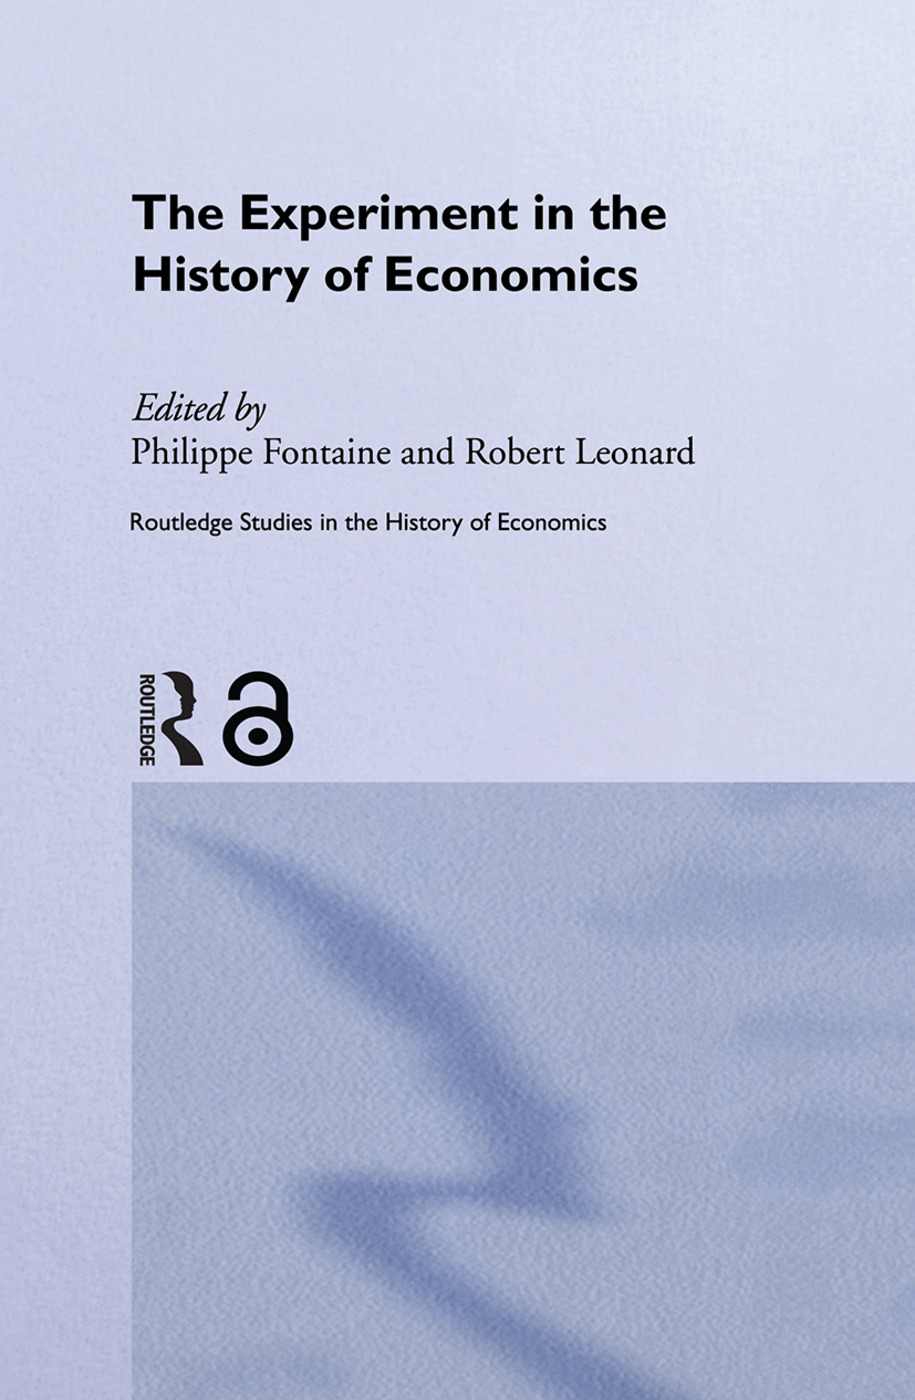 The Experiment in the History of Economics